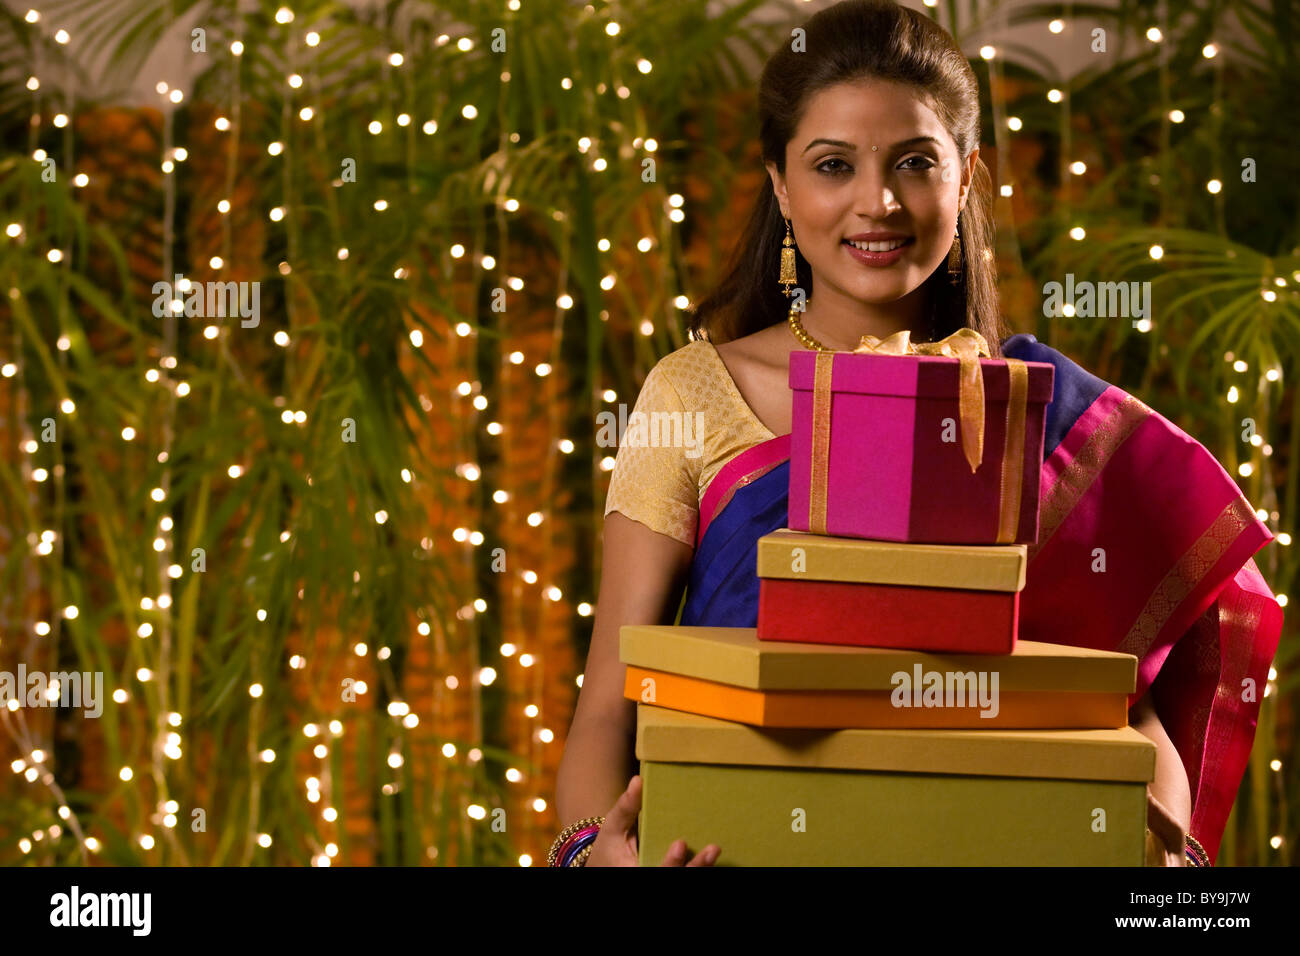 Portrait of a woman with gifts - Stock Image